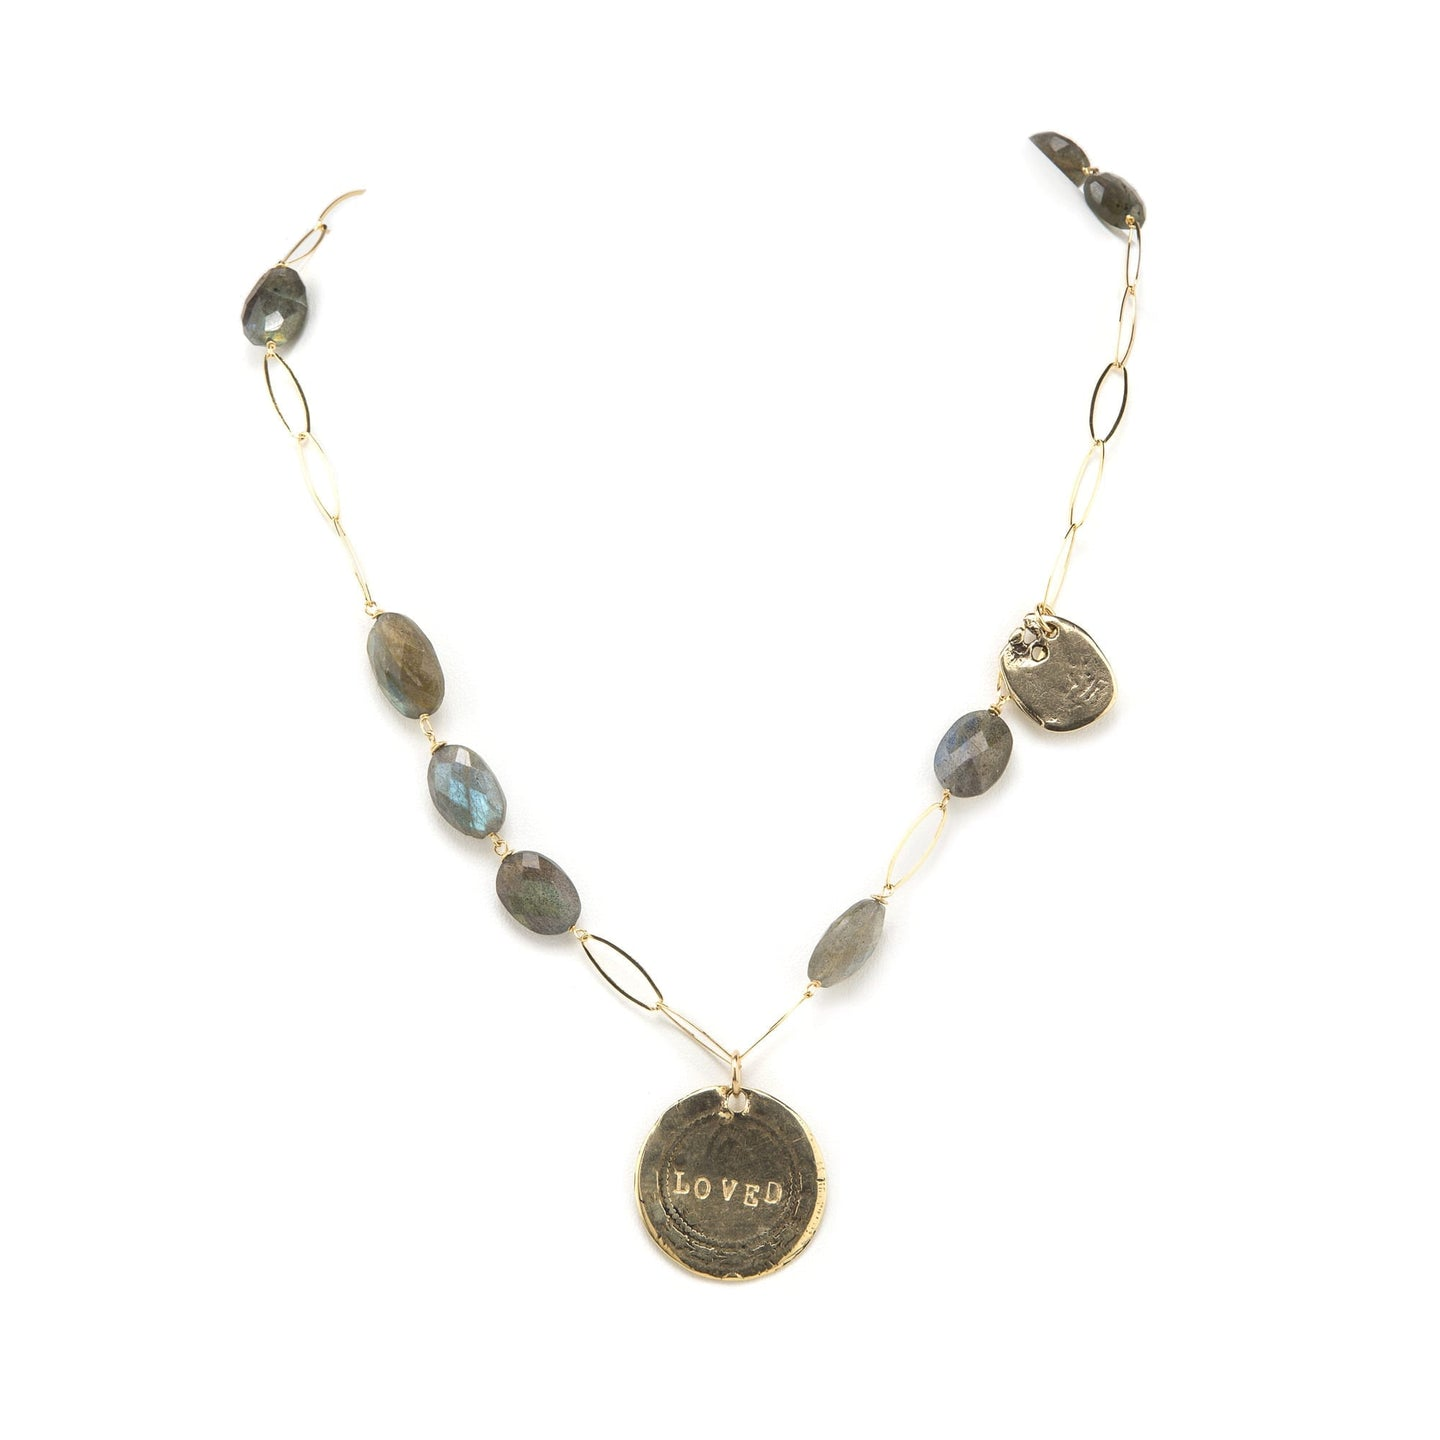 Love Stamped Necklace with Labradorite